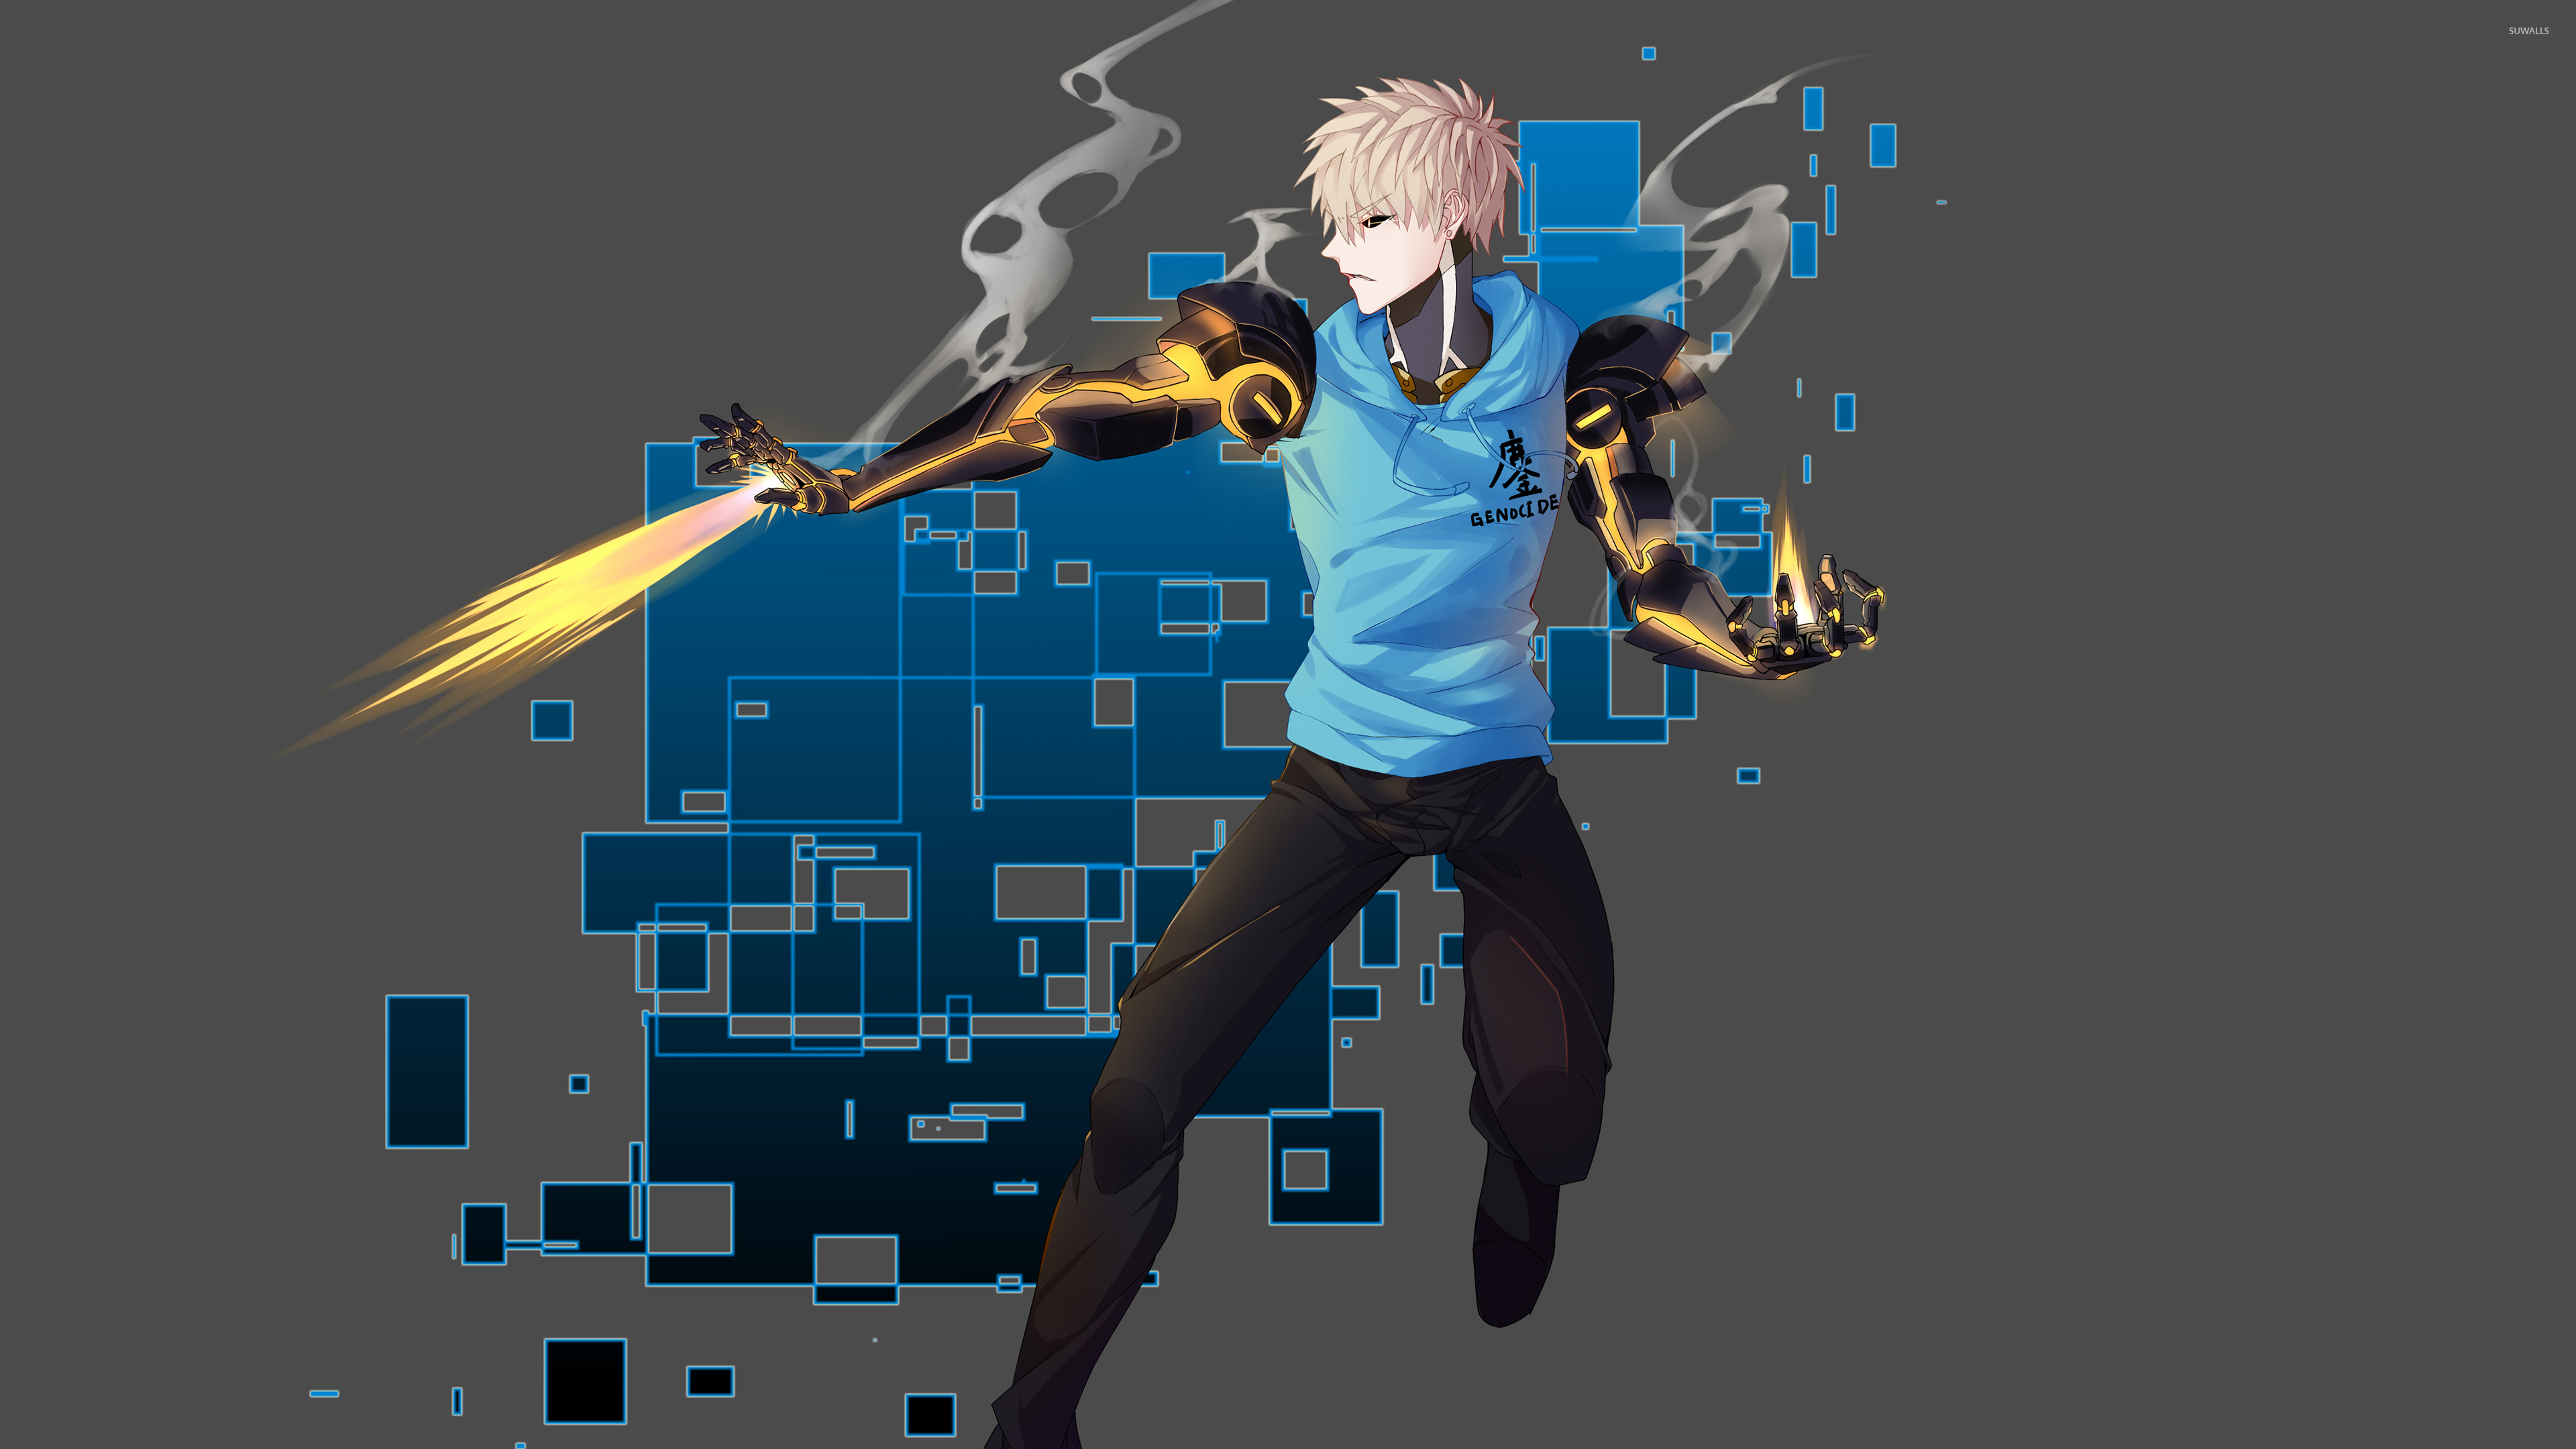 Genos Shooting Fire In One Punch Man Wallpaper Anime Wallpapers